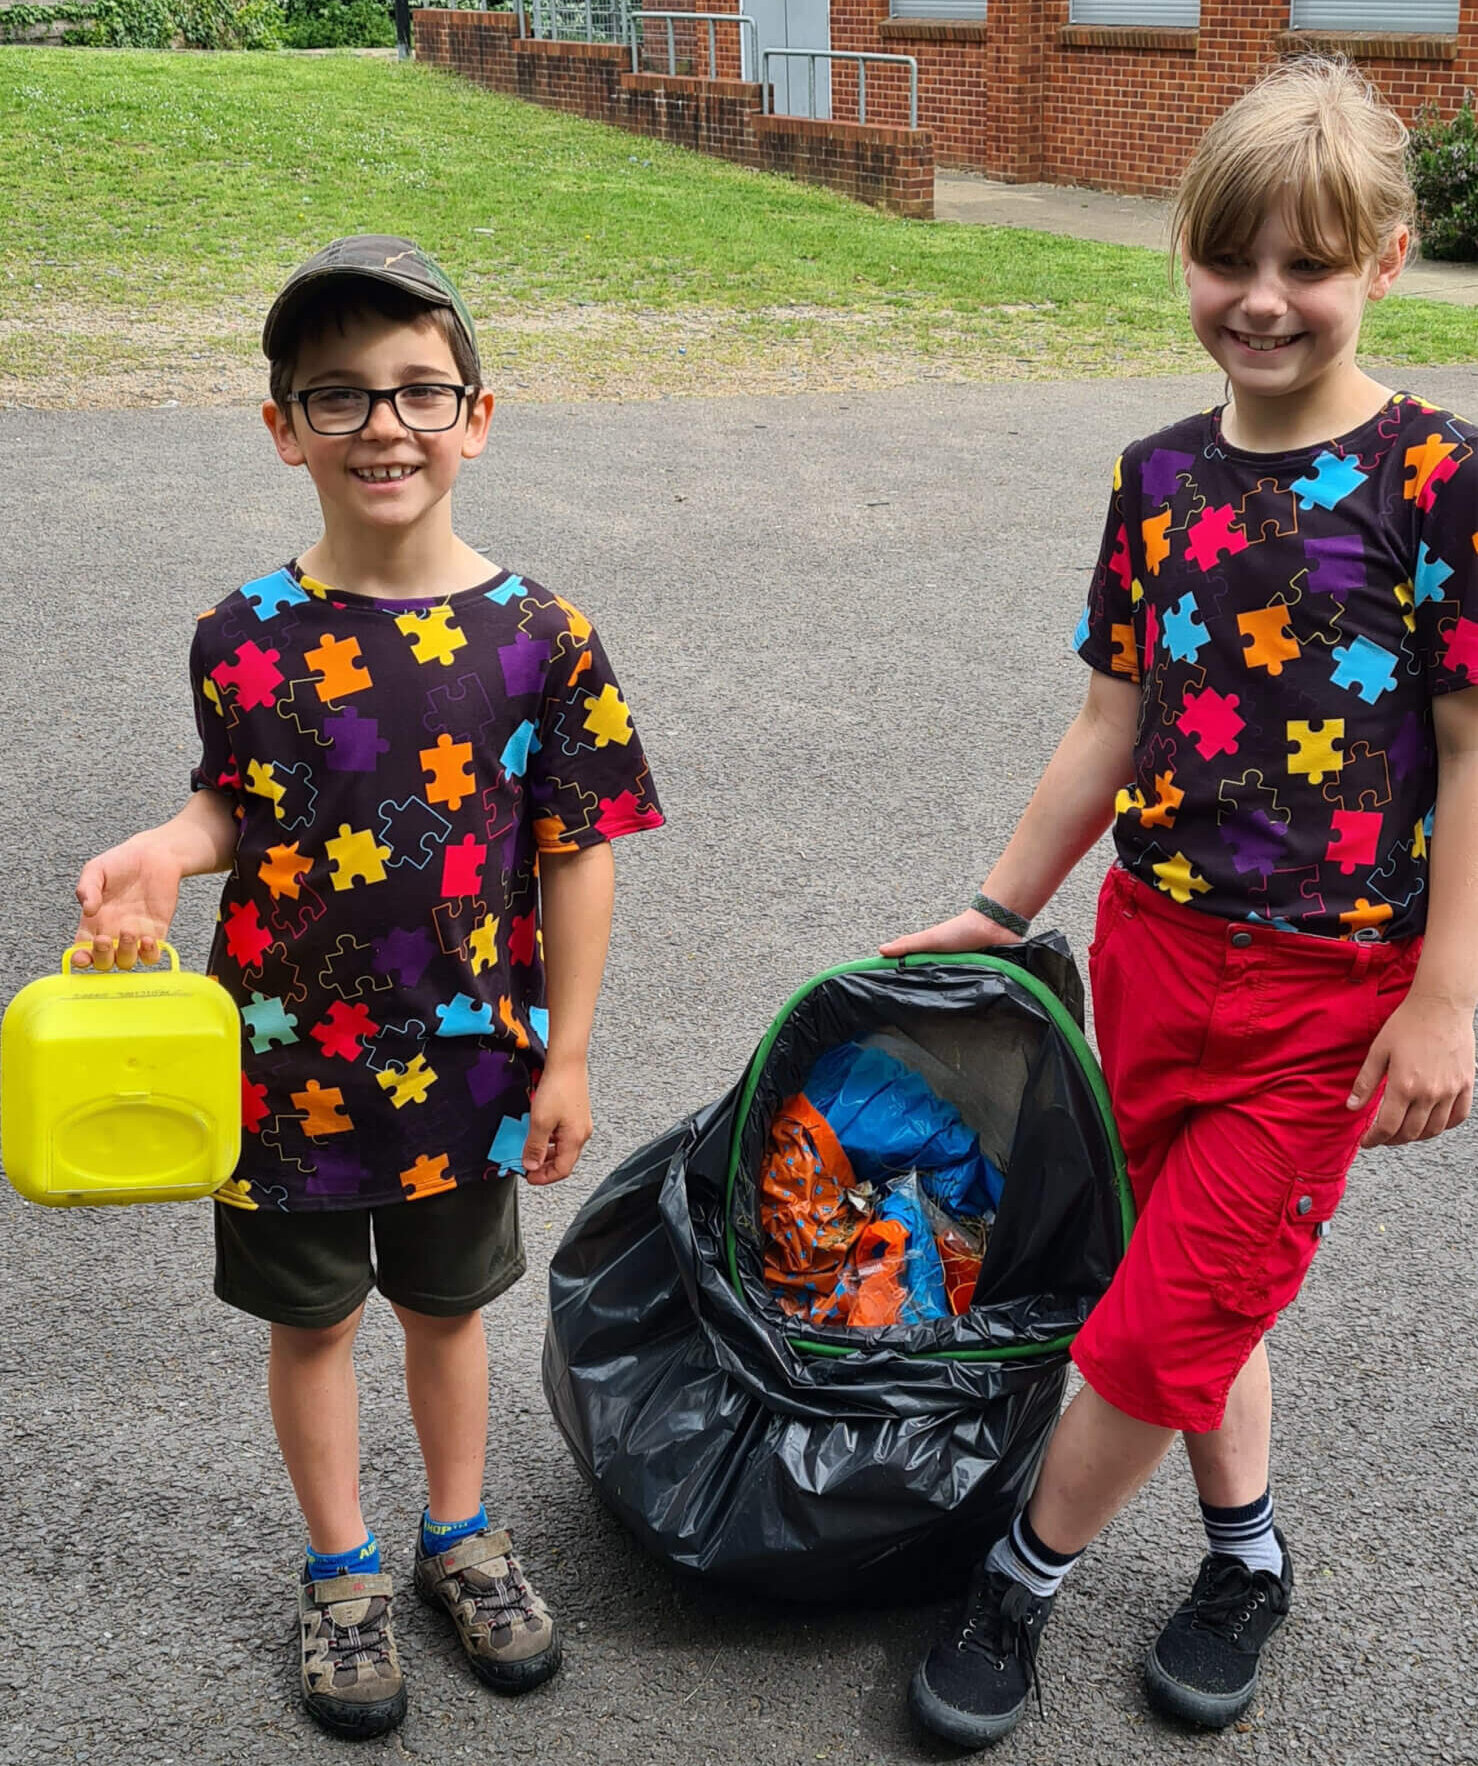 bibic-girl-with-brother-litter-picking